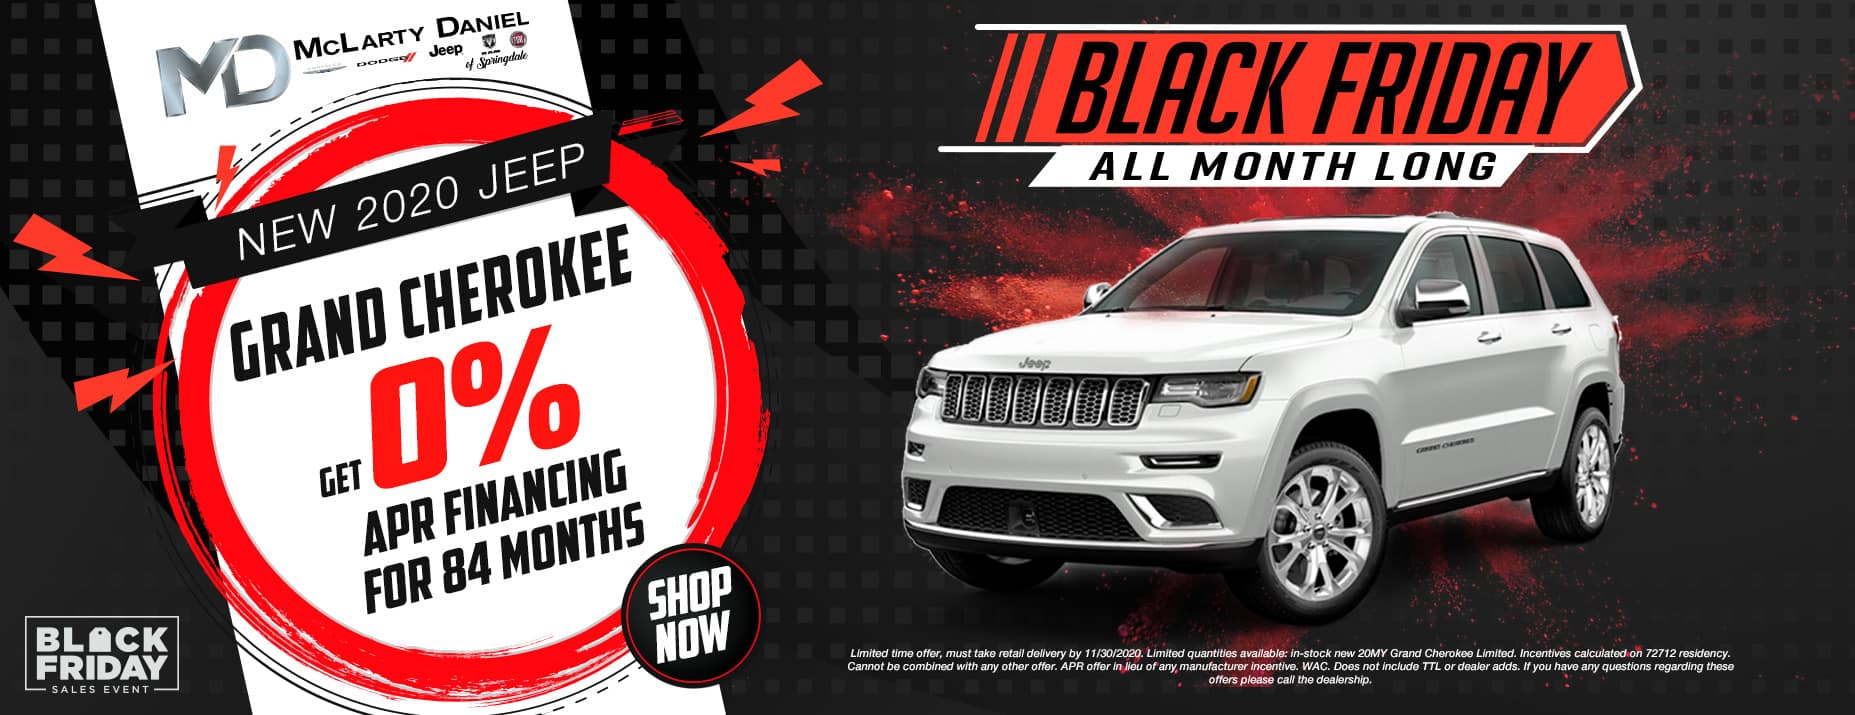 GET 0% FOR 84 MONTHS ON NEW GRAND CHEROKEE!